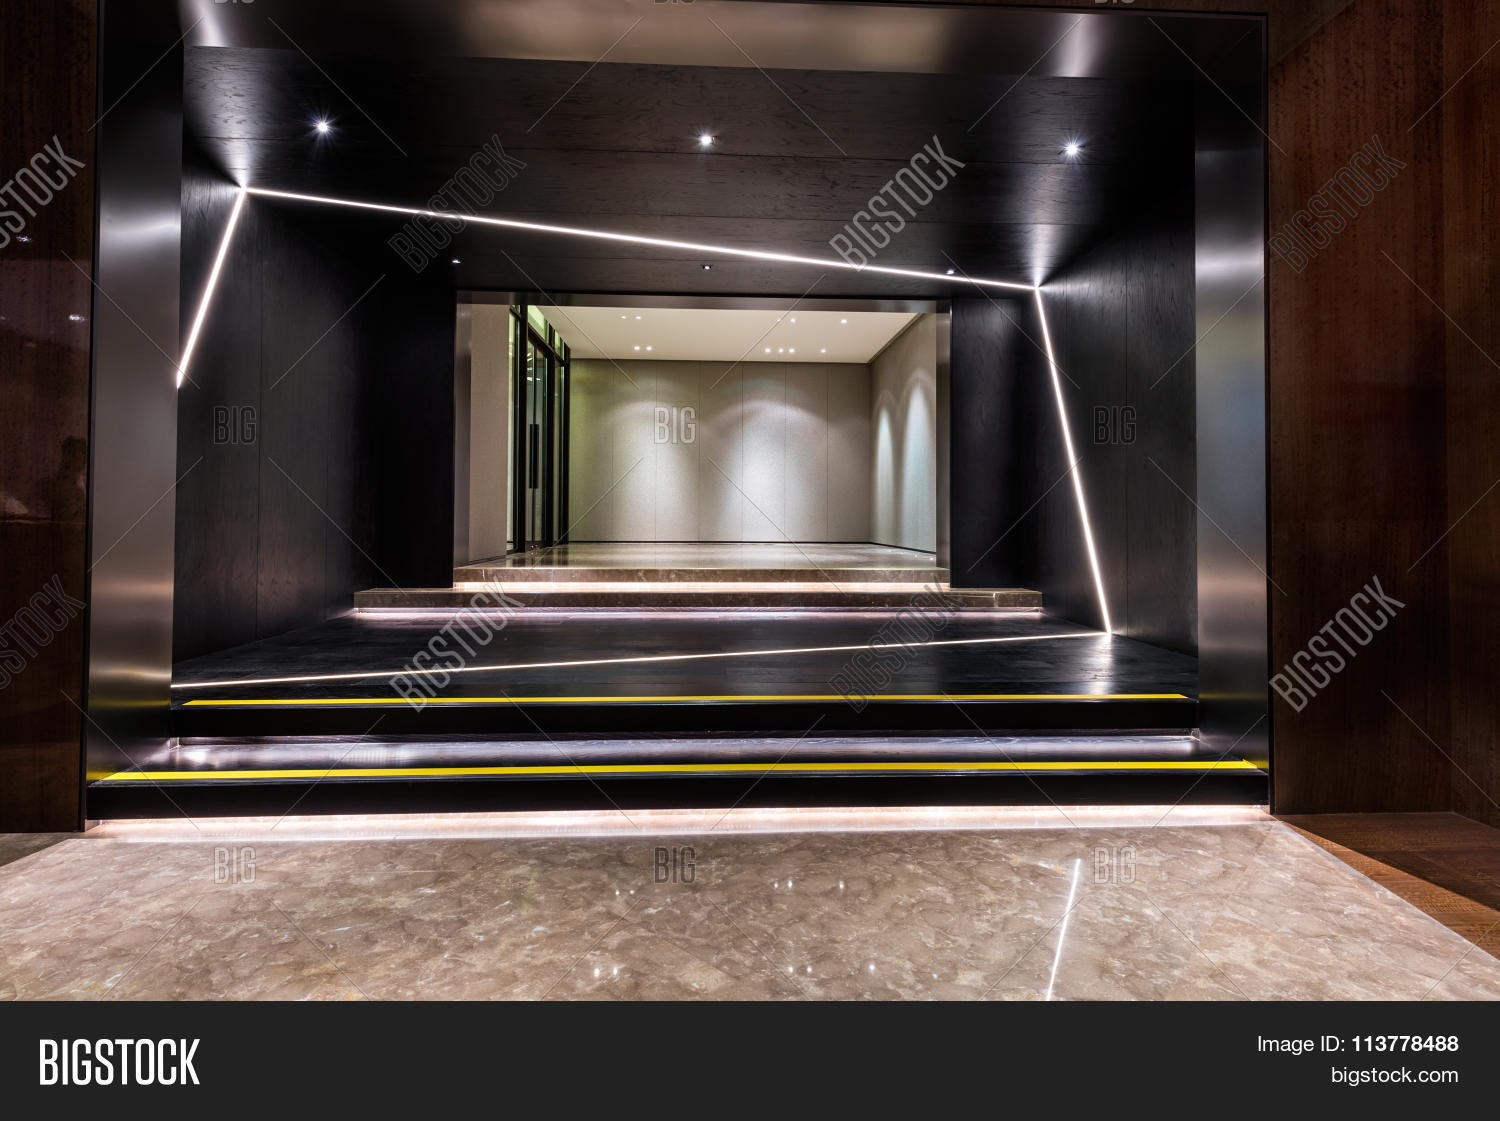 Area Of Foyer : Foyer entrance area of a building stock photo